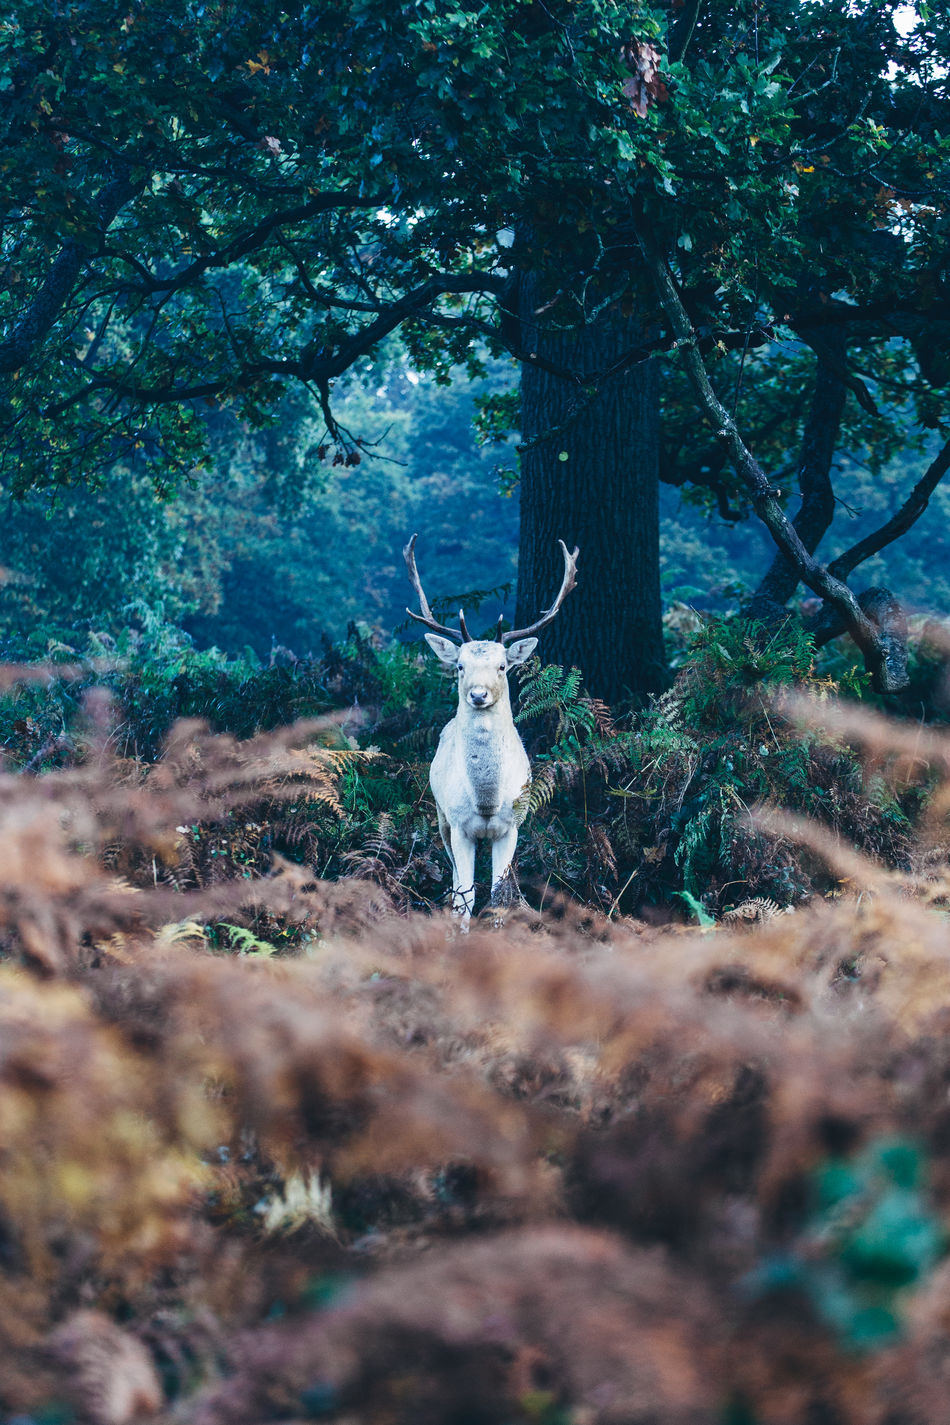 Animal Themes Animals In The Wild Antler Beauty In Nature Day Deer Der Forest Mammal Nature No People One Animal Outdoors Reindeer Sky Stag Tree White Dress